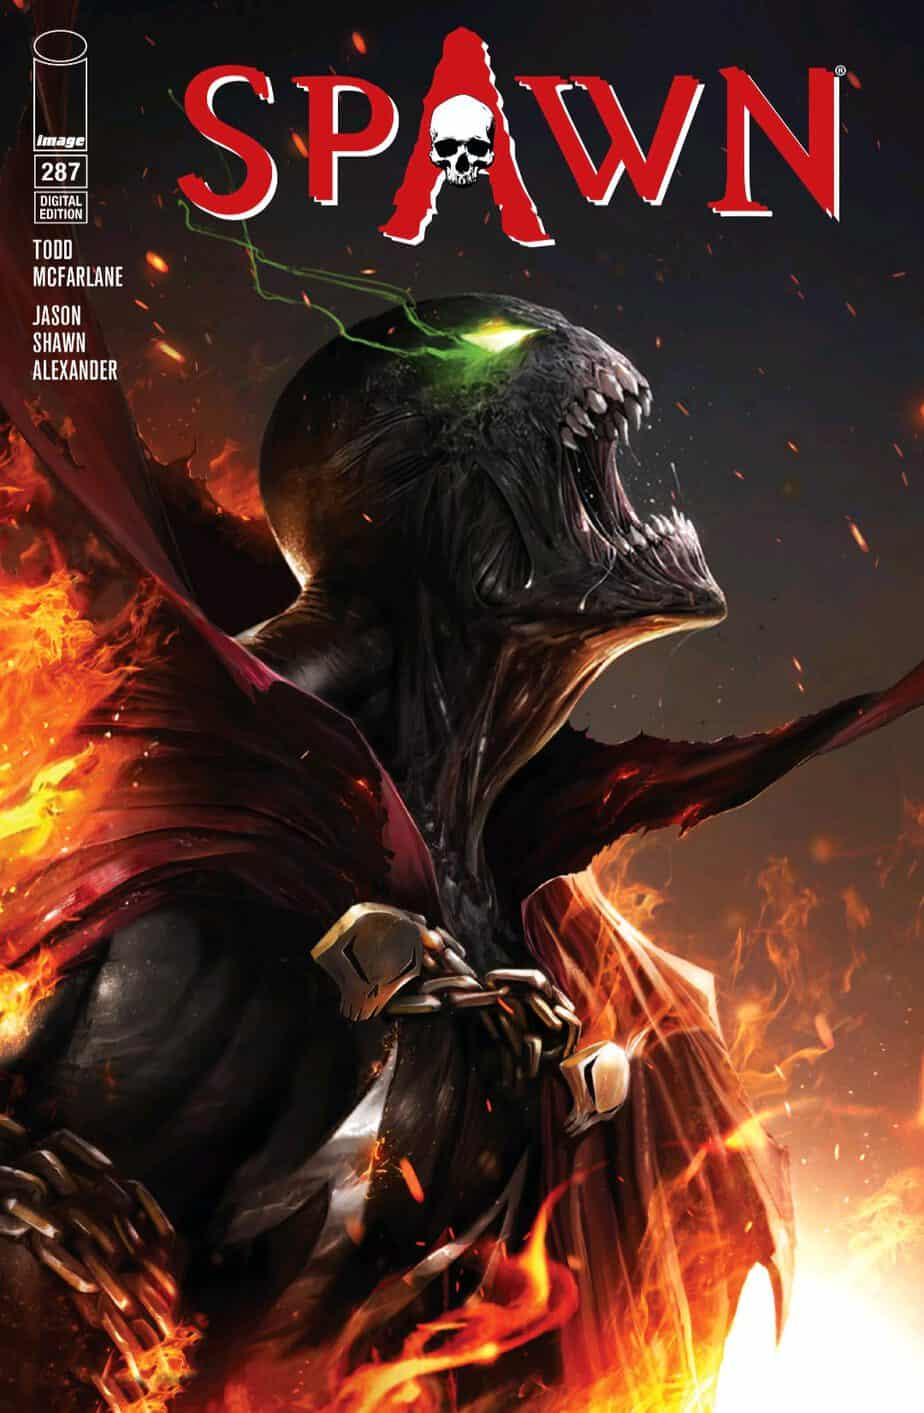 Spawn-287-cover